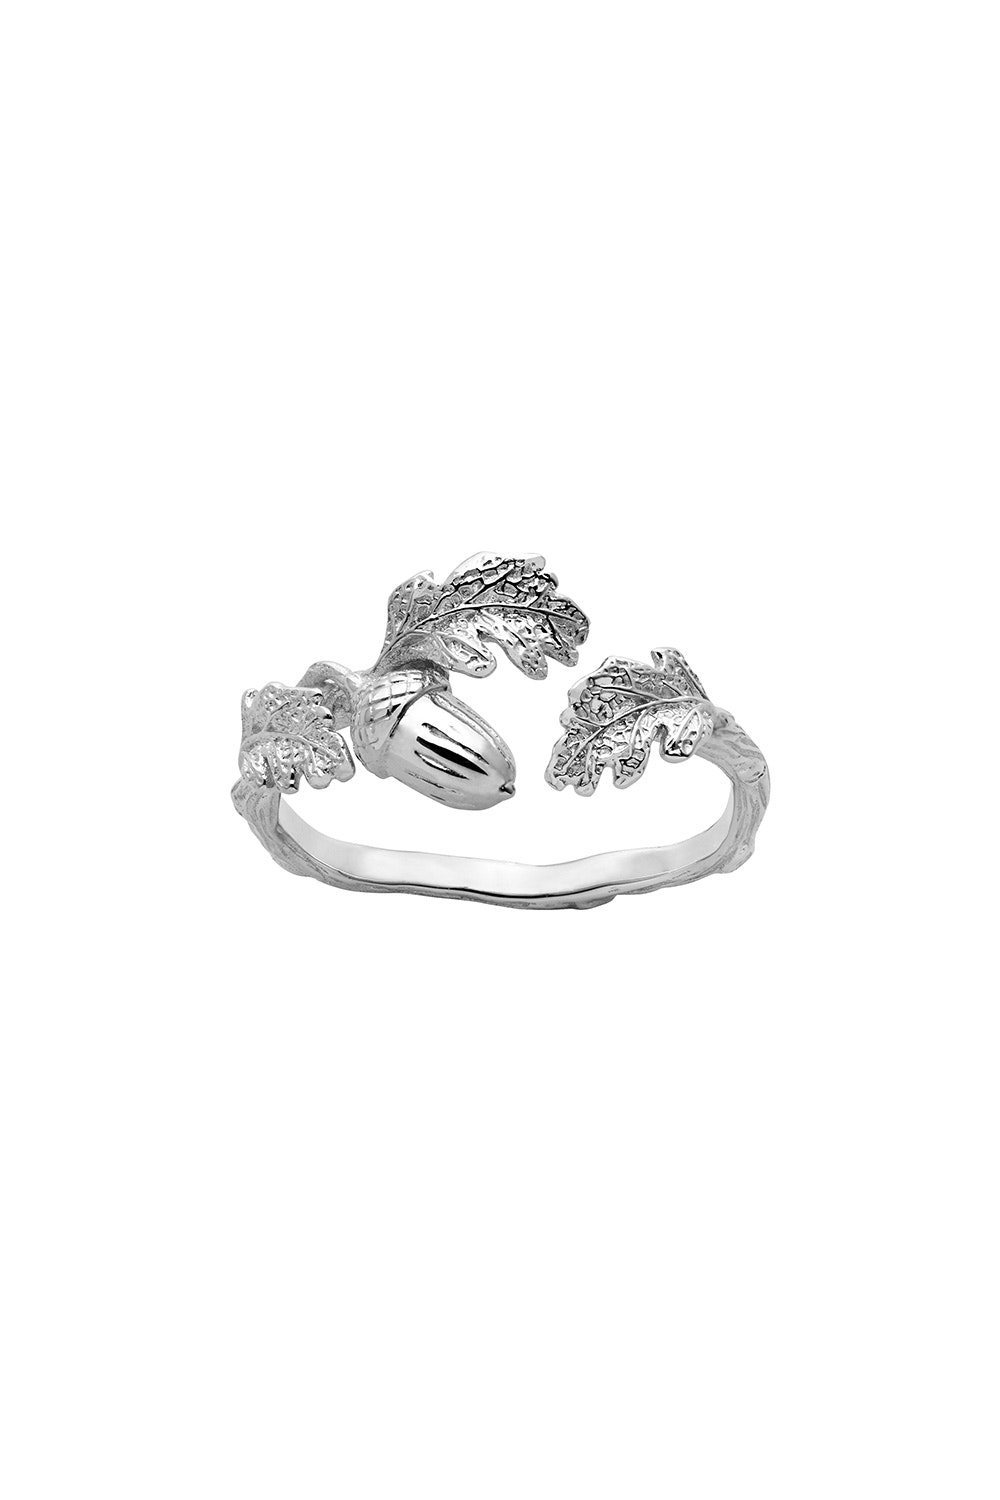 acorn-and-leaf-ring-silver-kw341stg-silver-front-0340217001551228543_1551228510